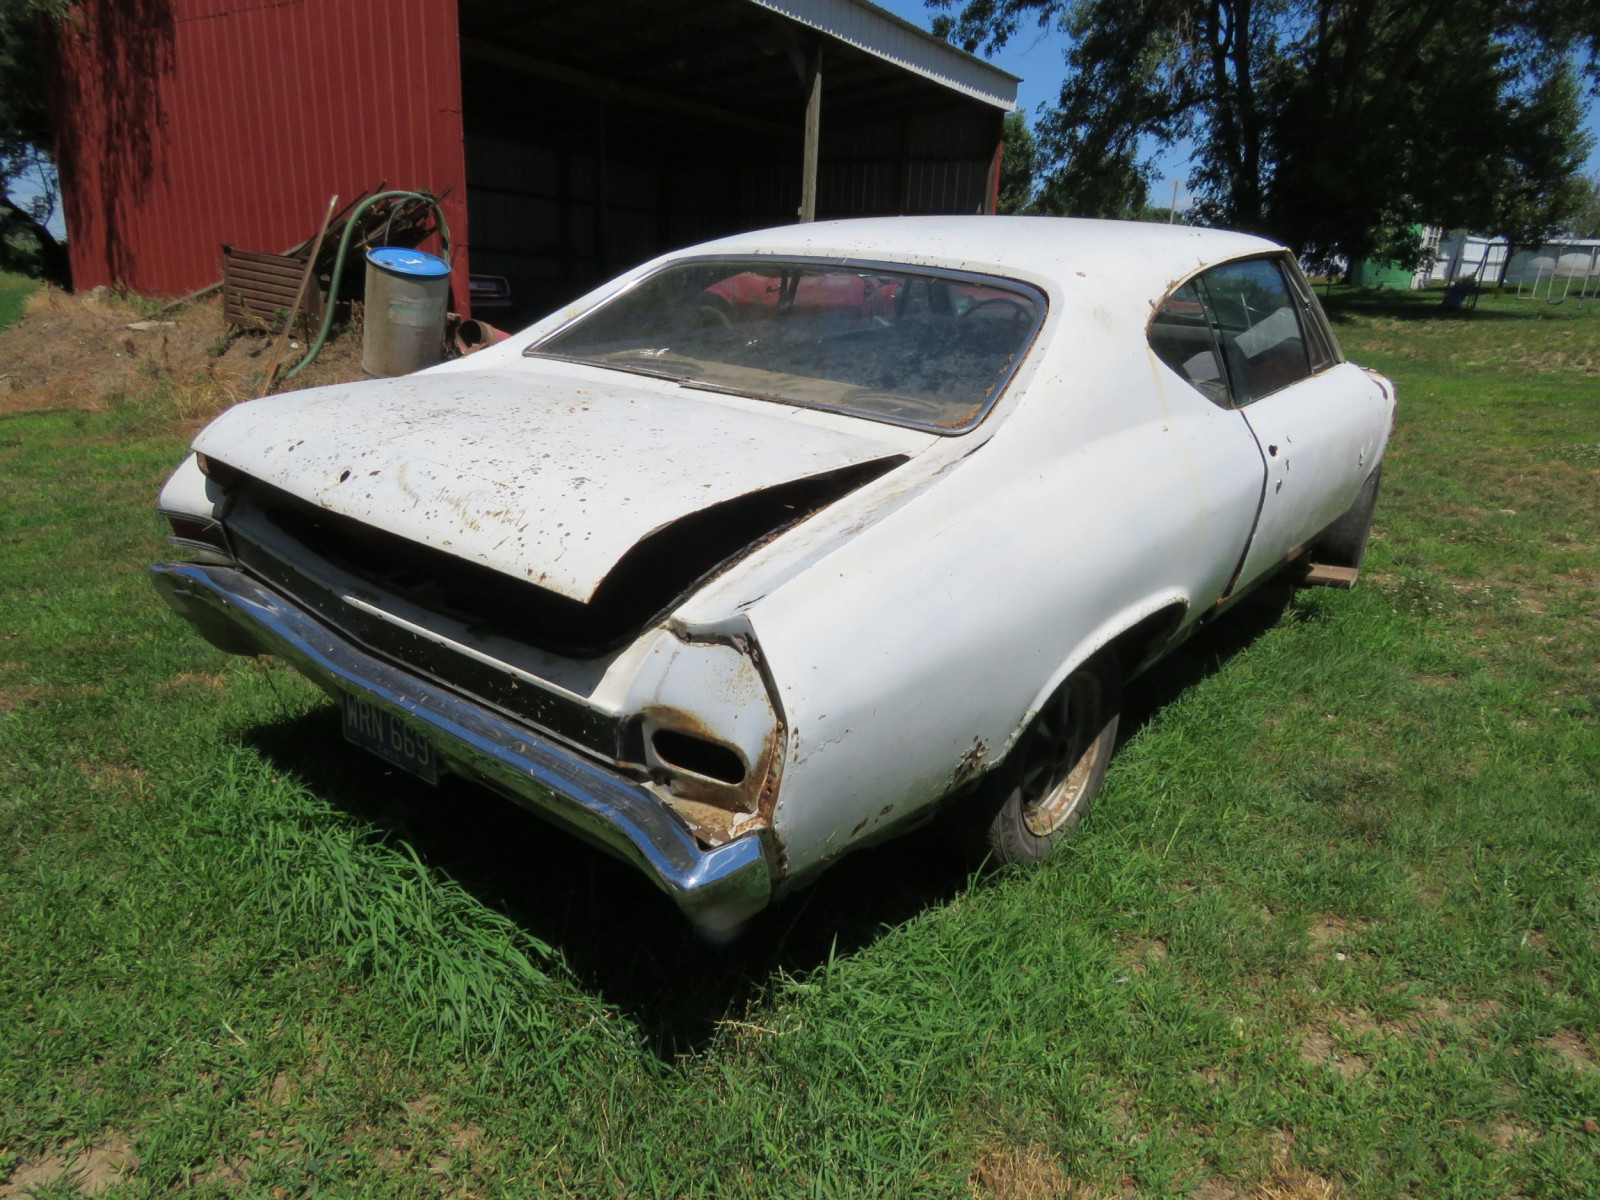 1968 Chevrolet Chevelle 2dr HT Project or Parts - Image 8